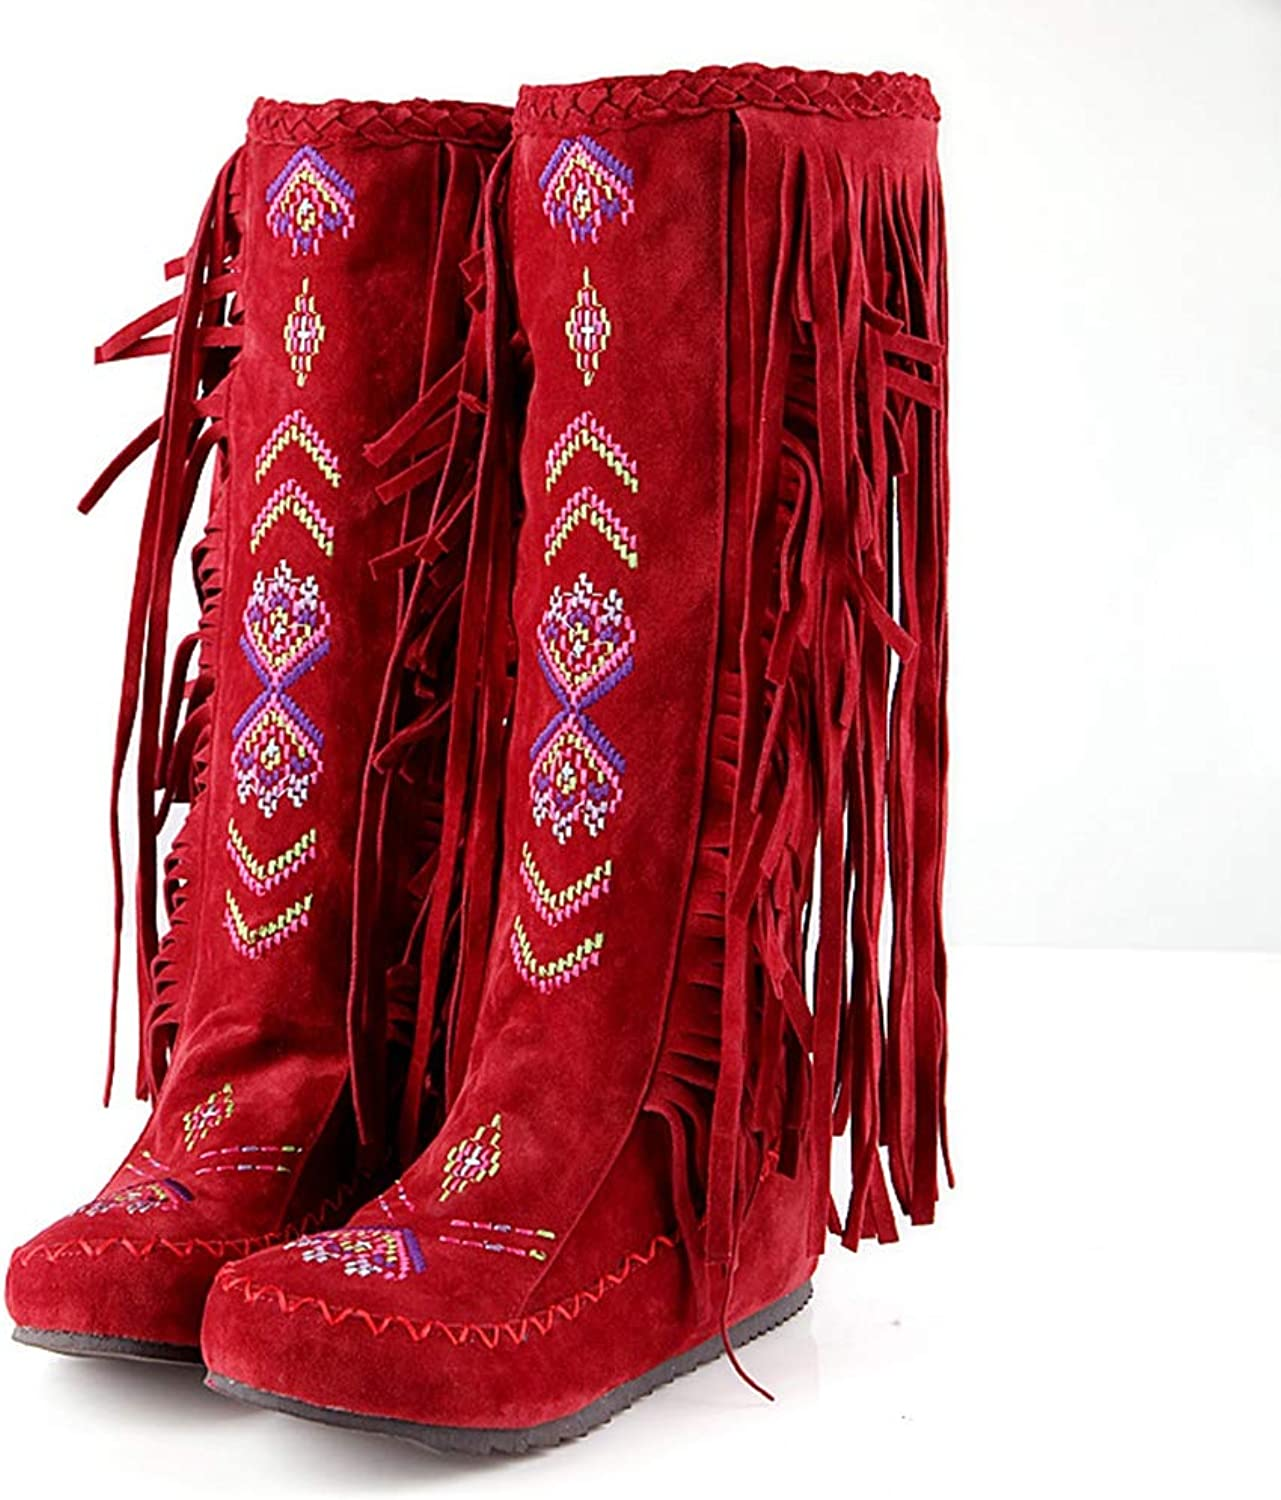 CYBLING Winter Warm Snow Boots for Women Suede Fringed Tassels Flat Low Heel Mid Calf Boots